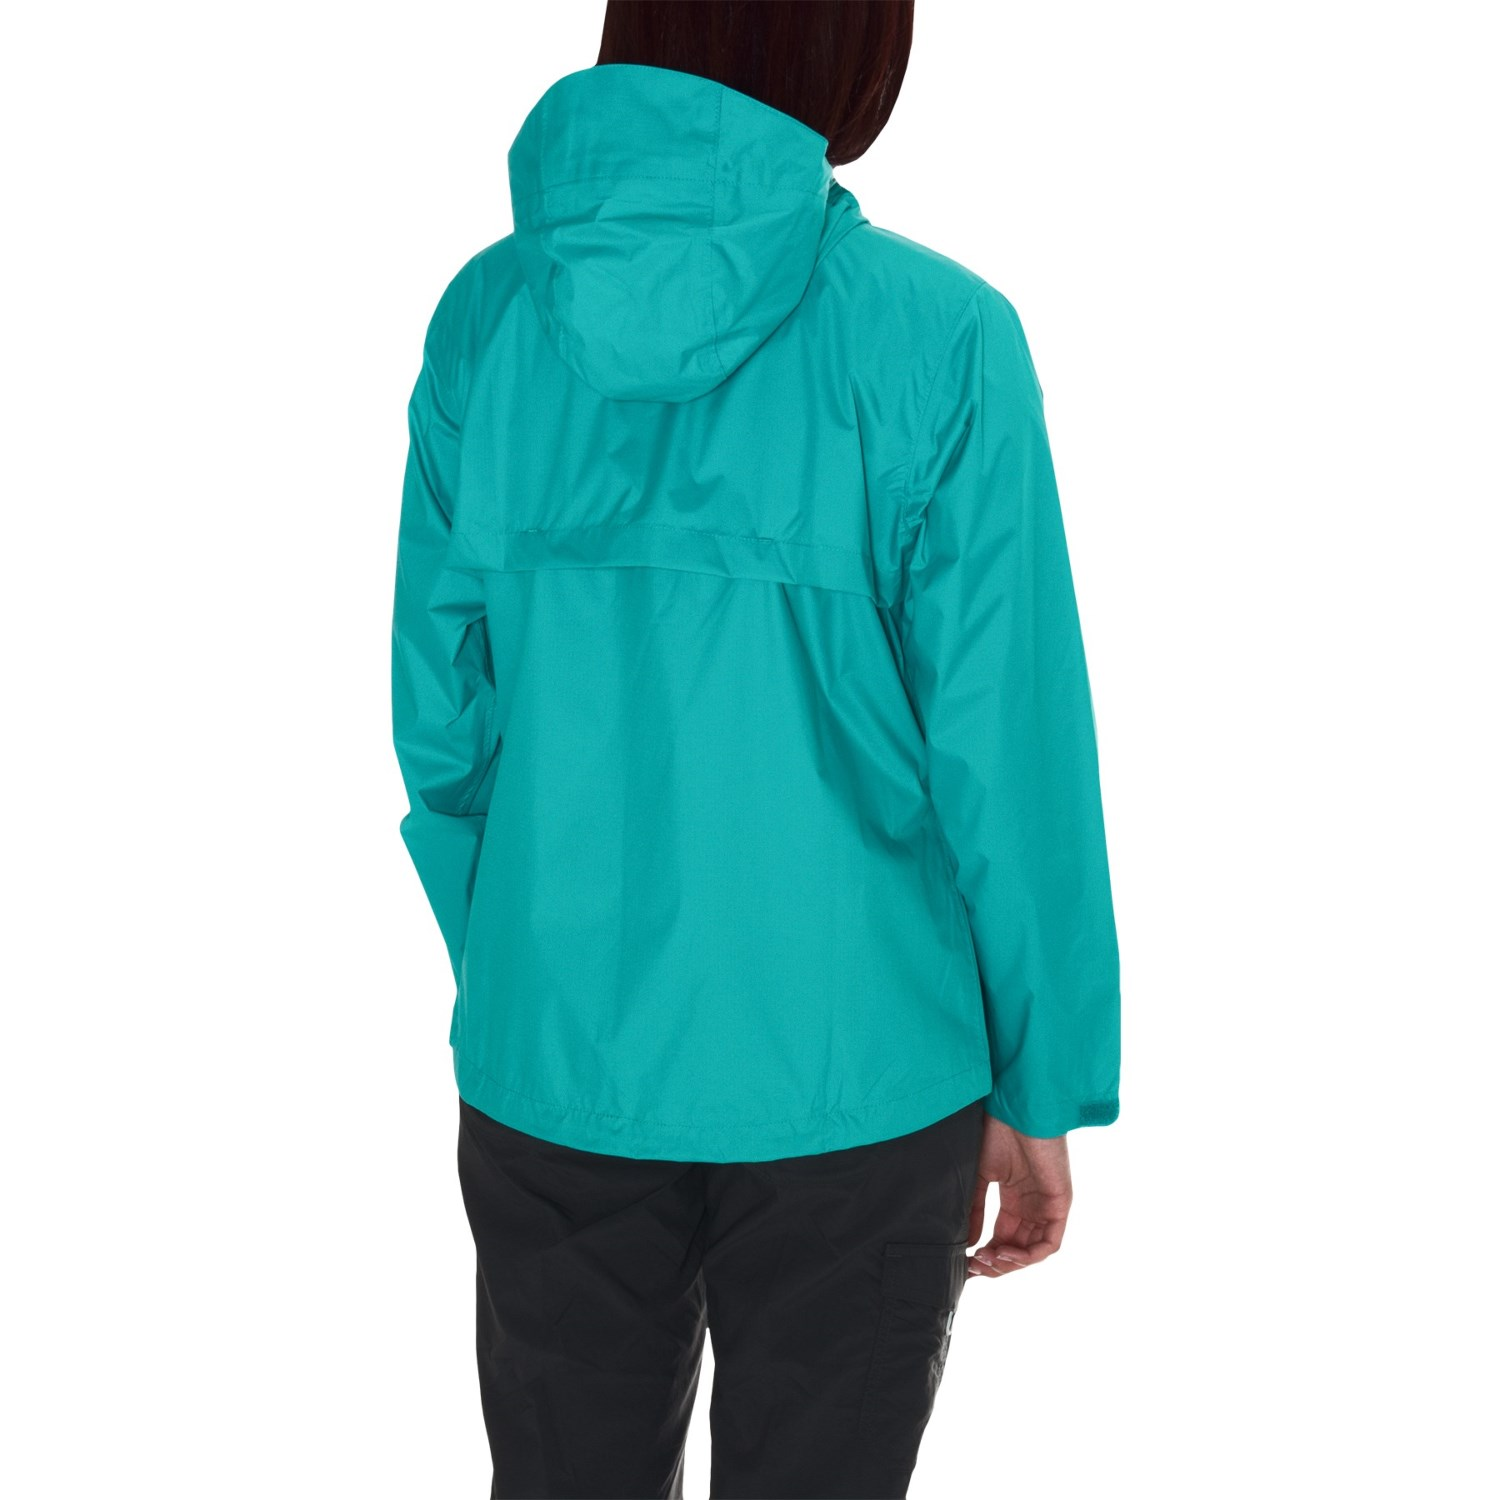 women's rain jackets Whether you're hiking through a mountain downpour or dodging puddles in the street, our rain jackets are built to keep the wet off your back. Ranging from technical shells to everyday outer layers, styles like the Stretch Ozonic™ and the Quasar™ Lite are built for performance and protection with features like Dry.Q.